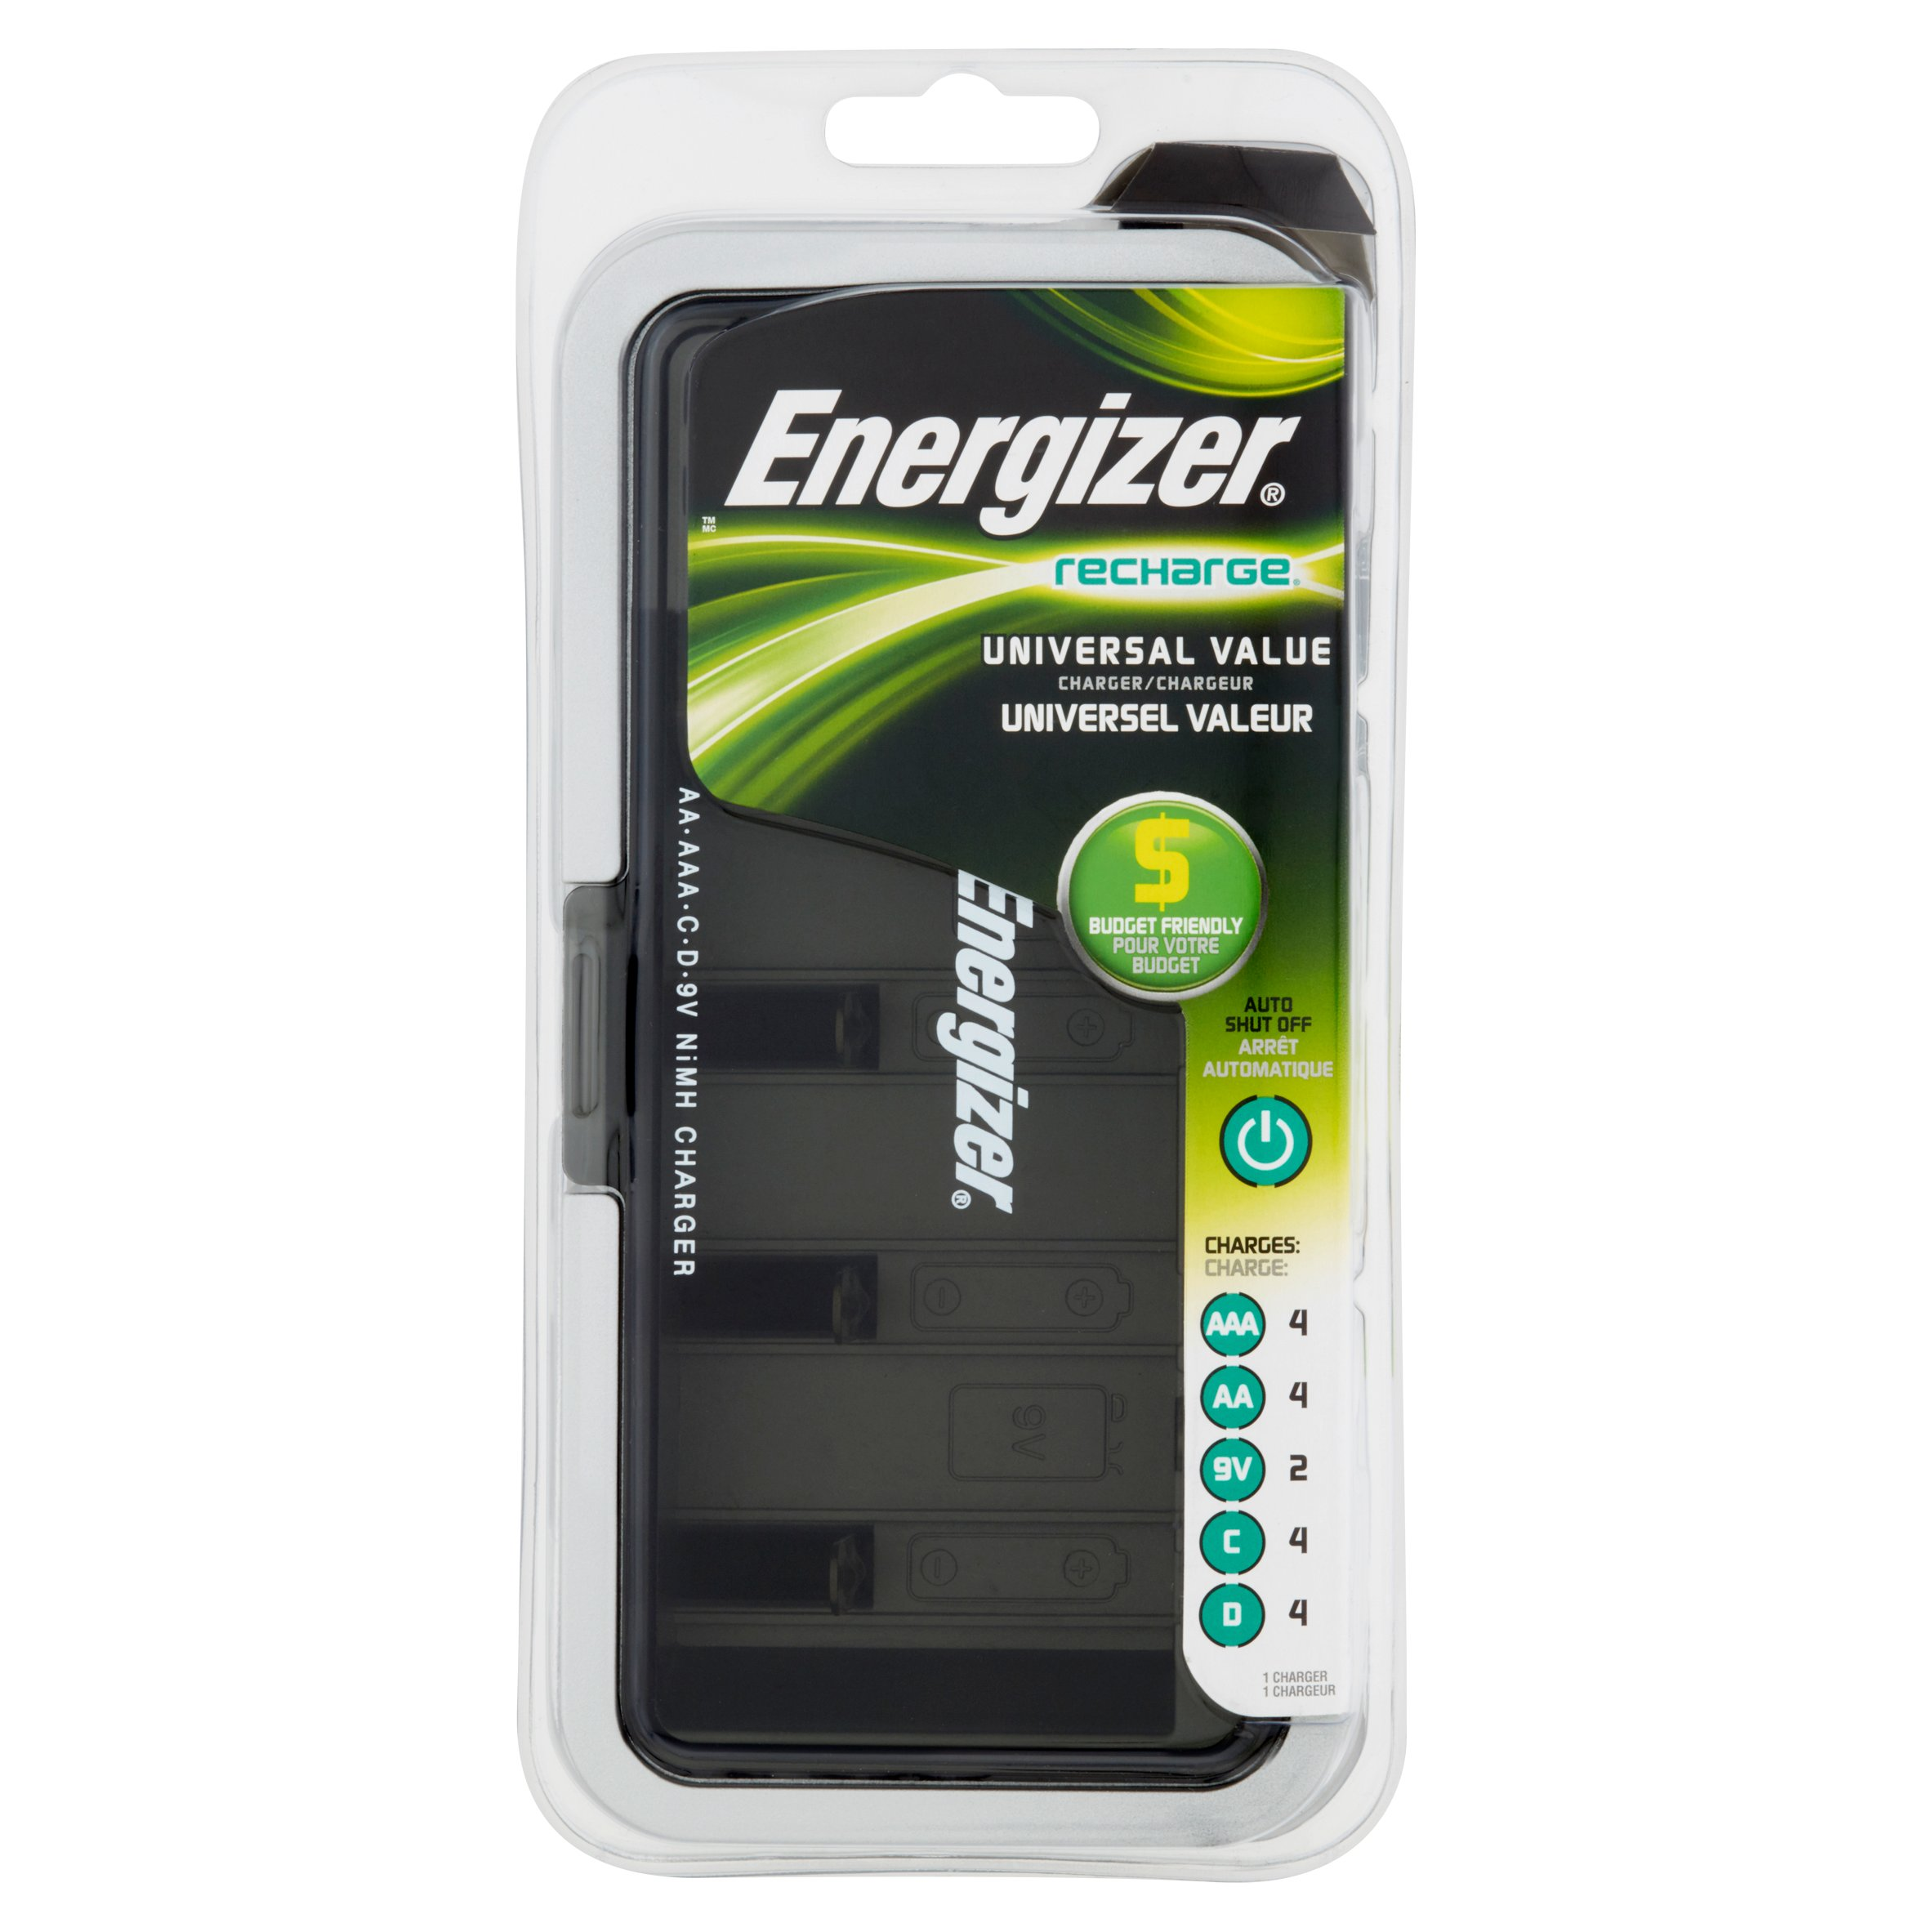 Energizer Recharge Universal Value Charger